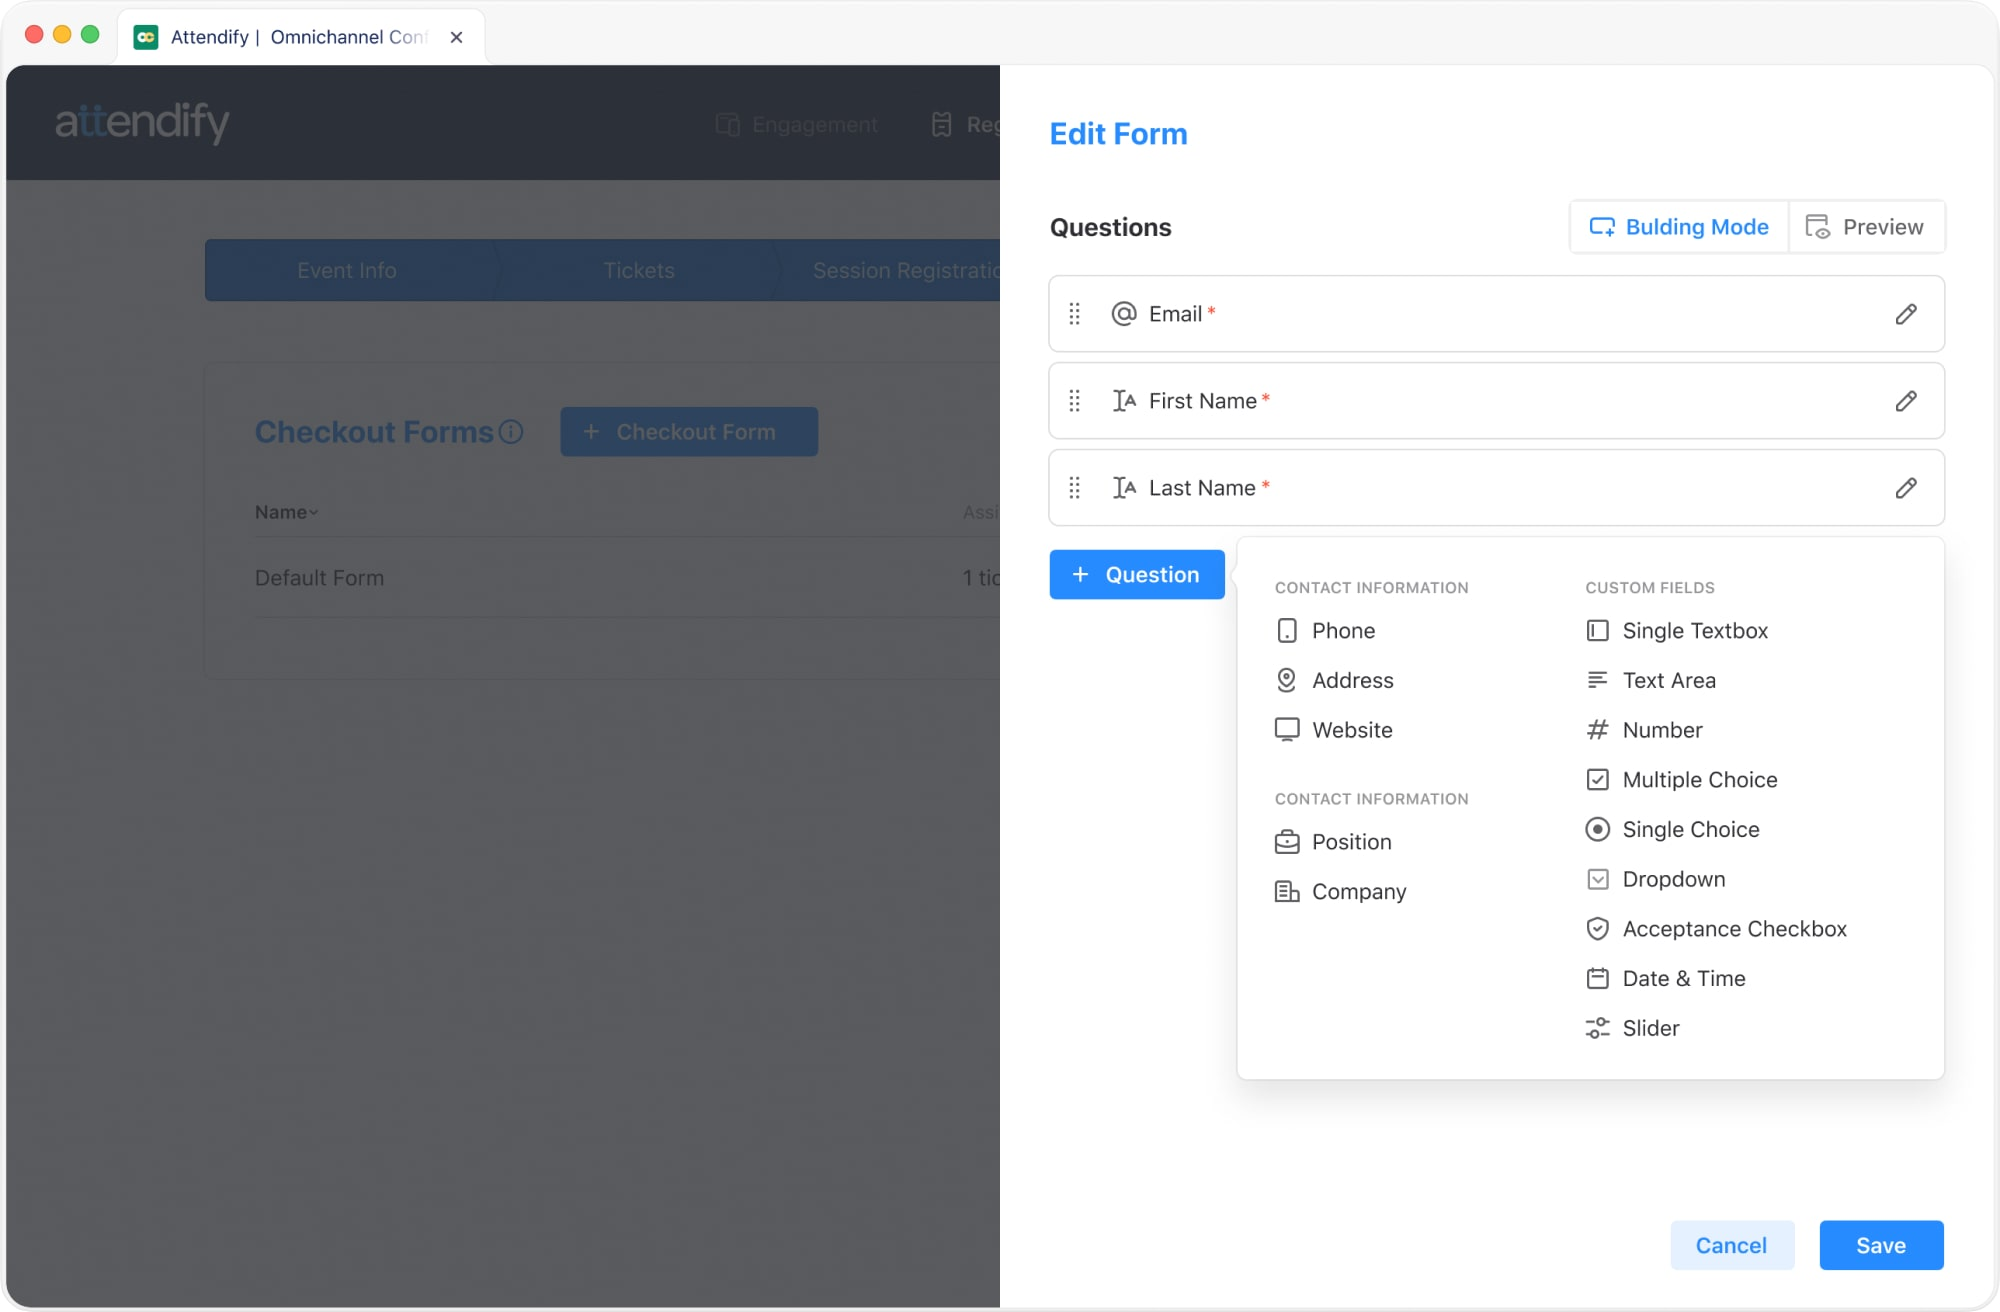 Attendify event registration software's customizable checkout forms